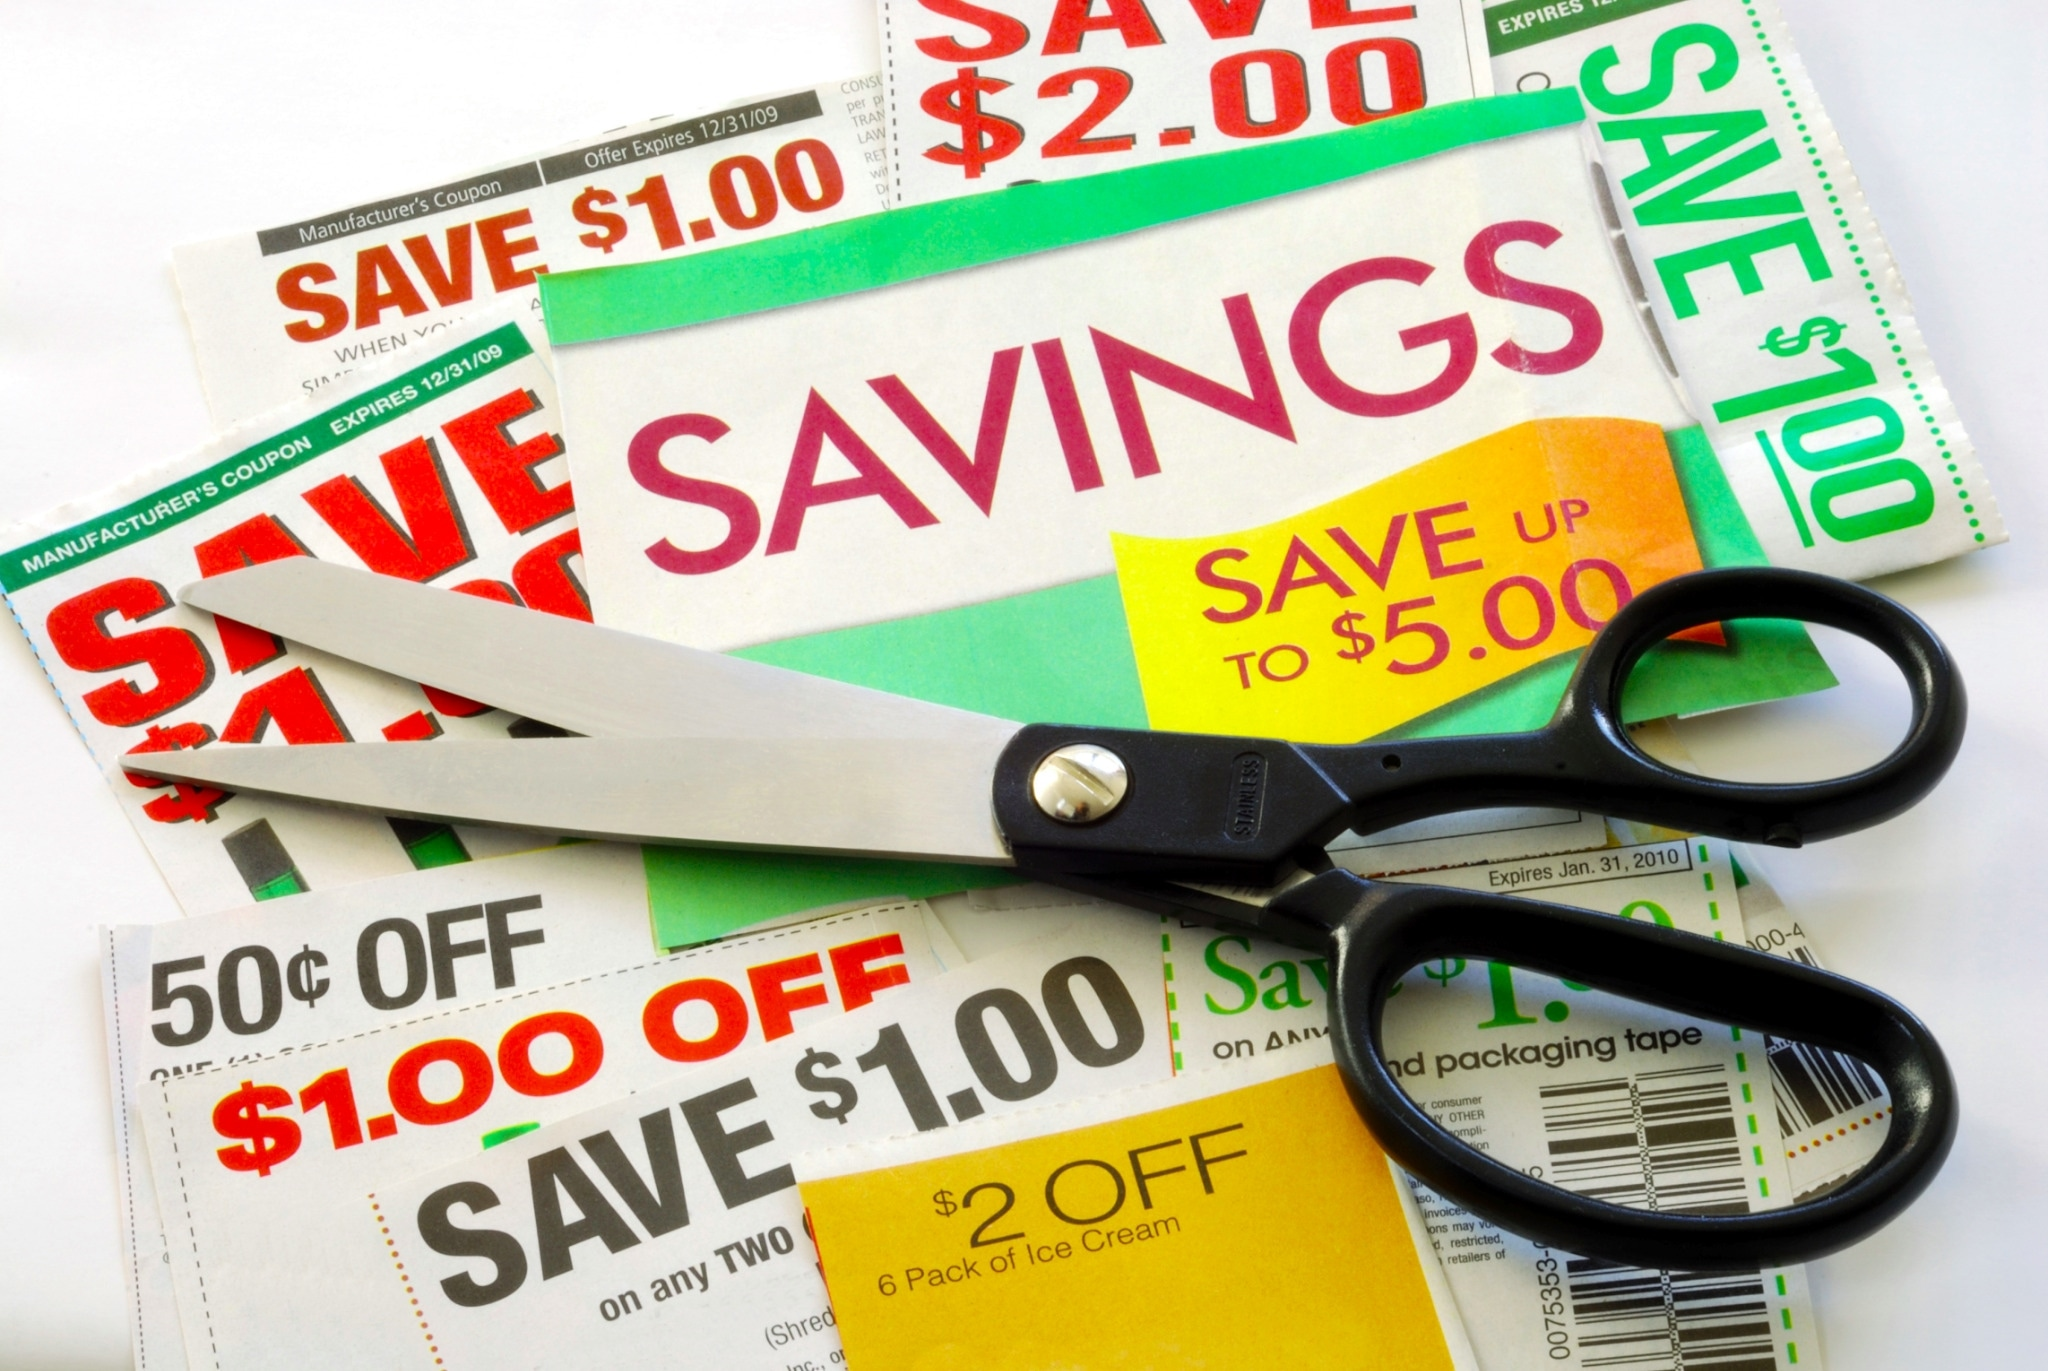 Couponing at Bealls: How to Save at Bealls Using Coupons, Sales & Special Events